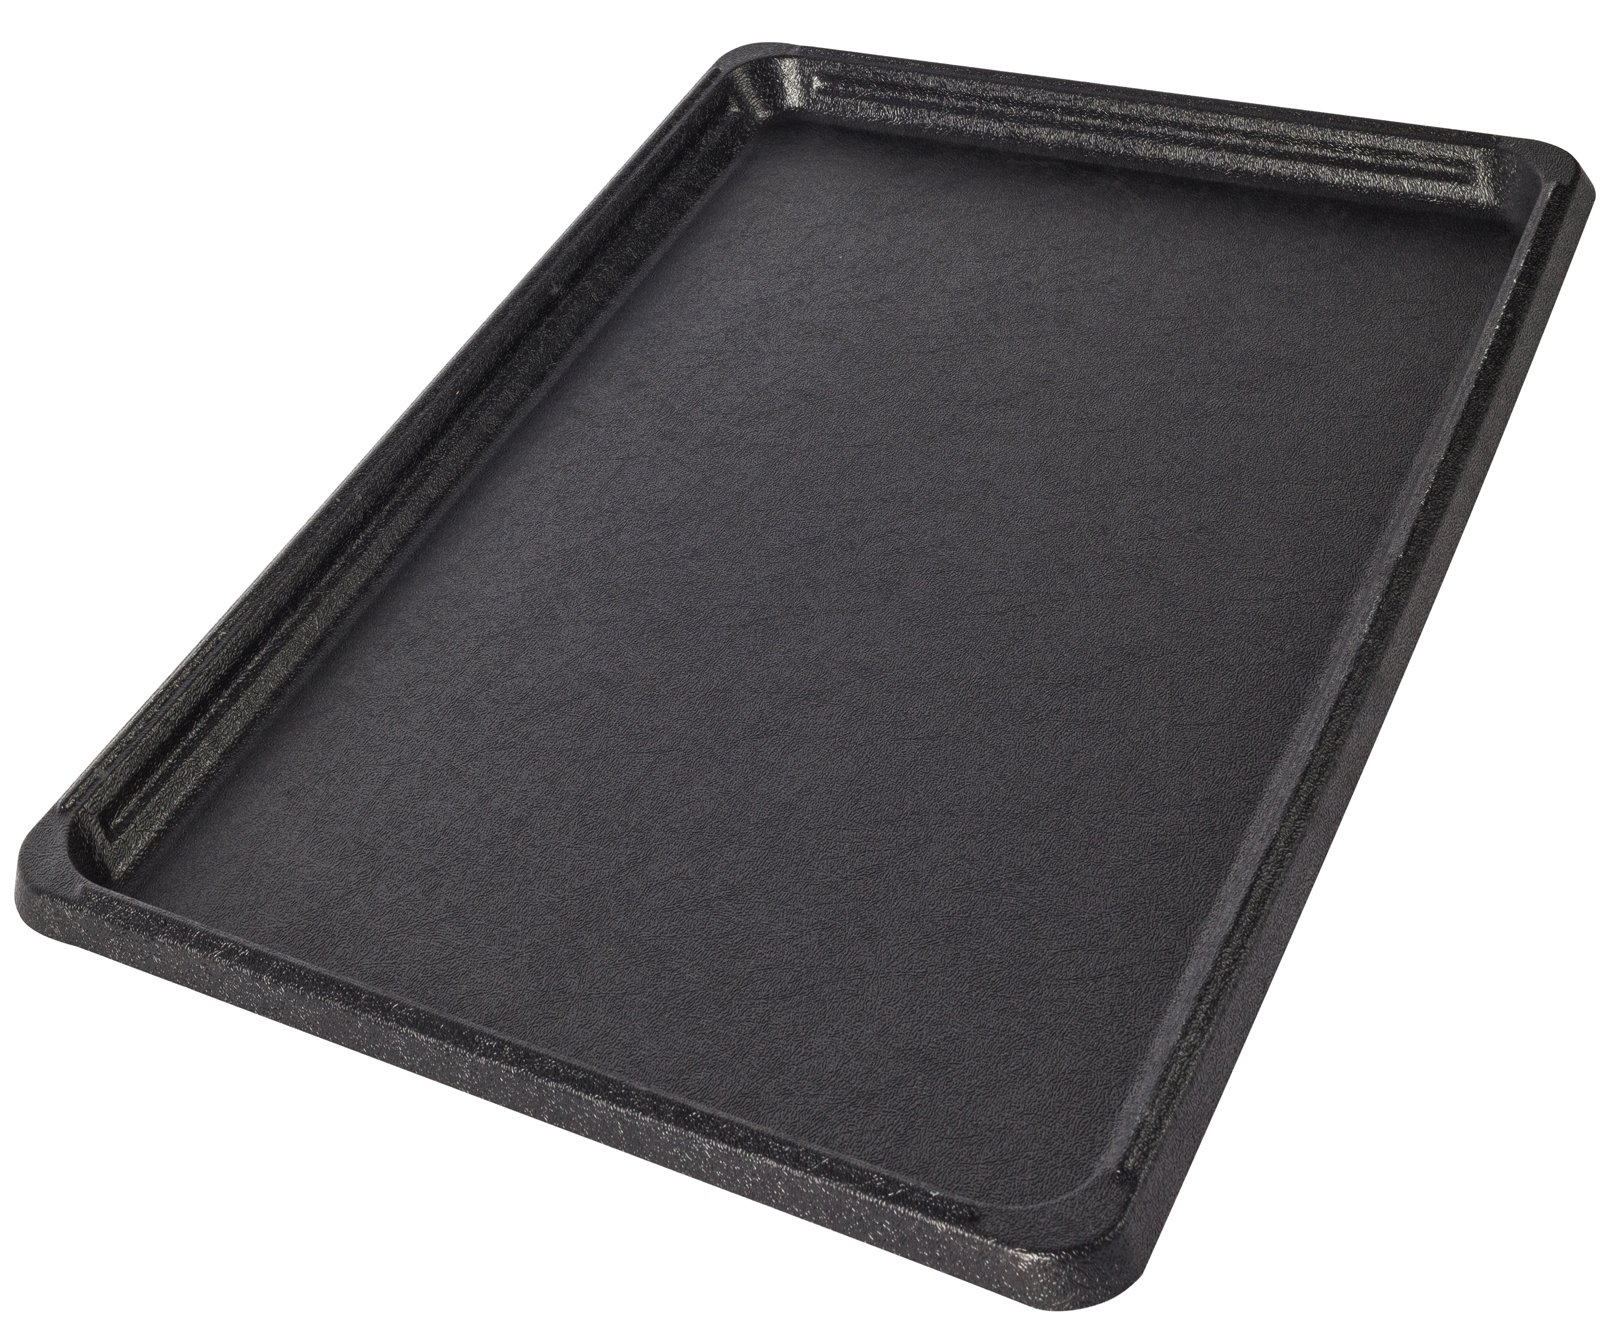 Replacement Tray for Dog Crate Pans - Medium 24 Inch Plastic Bottom Pan Floor Liners for Pet Cages Crates Kennels Dogs Cat Rabbit Ferret Critter Nation Folding Metal Wire Training Cage Liner Trays by Paws & Pals